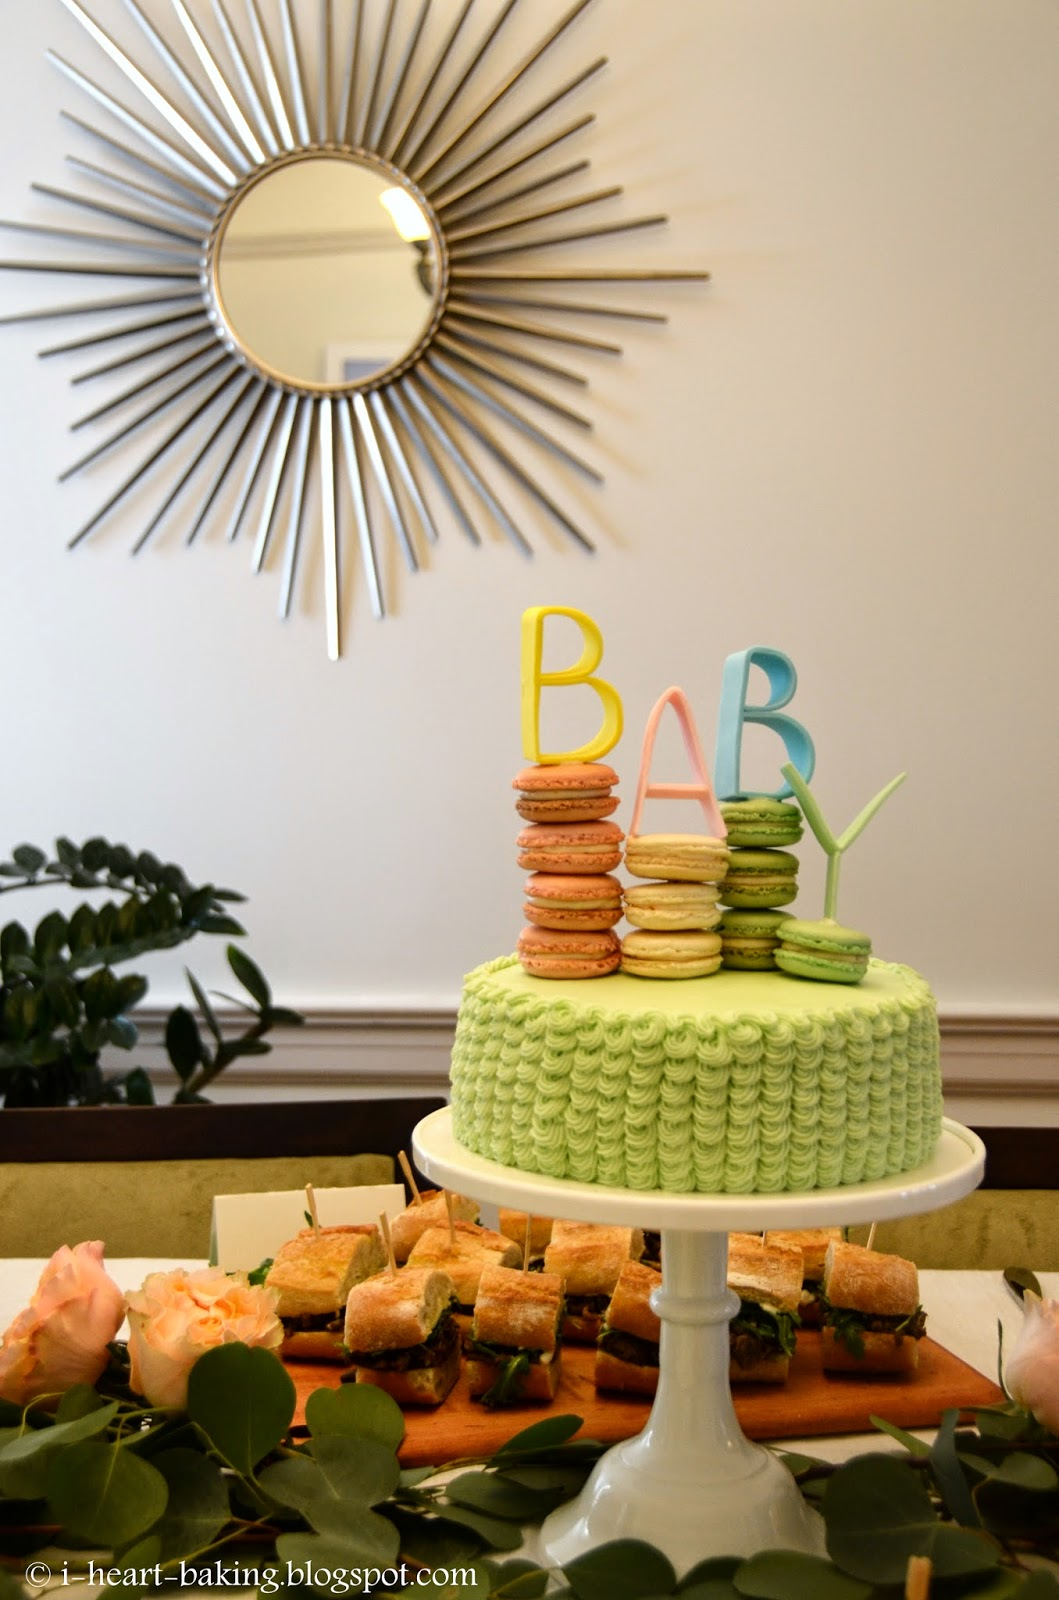 The 22 Cutest Baby Shower Cakes and Diaper Cakes